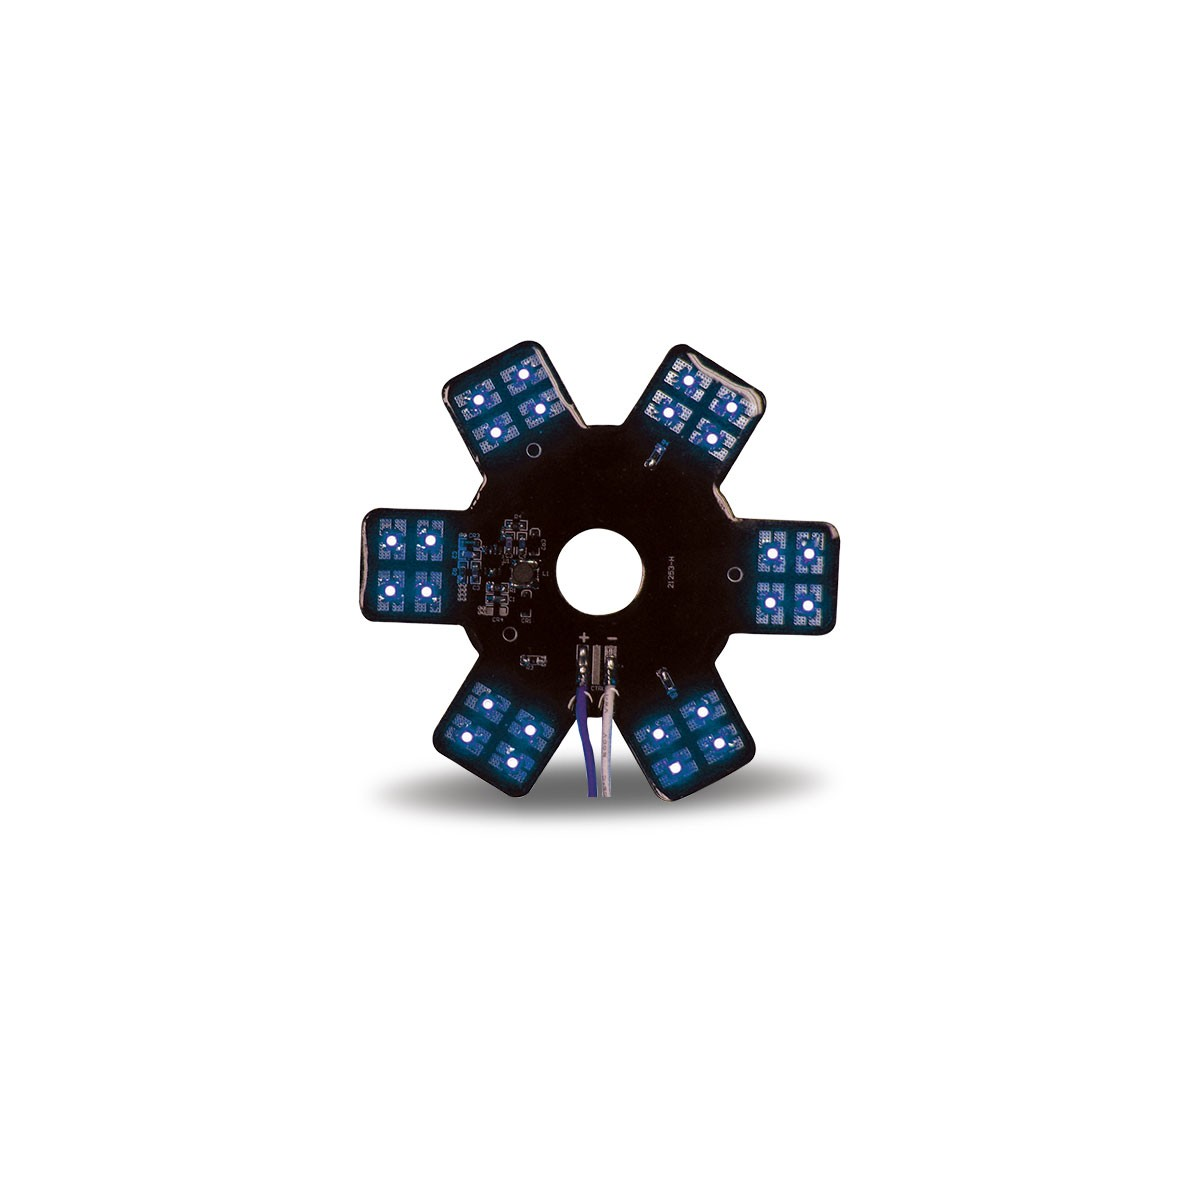 5 Blue Led Star Light For 13 Donaldson Air Cleaners 24 Diodes Accent Lighting Wiring Diagram